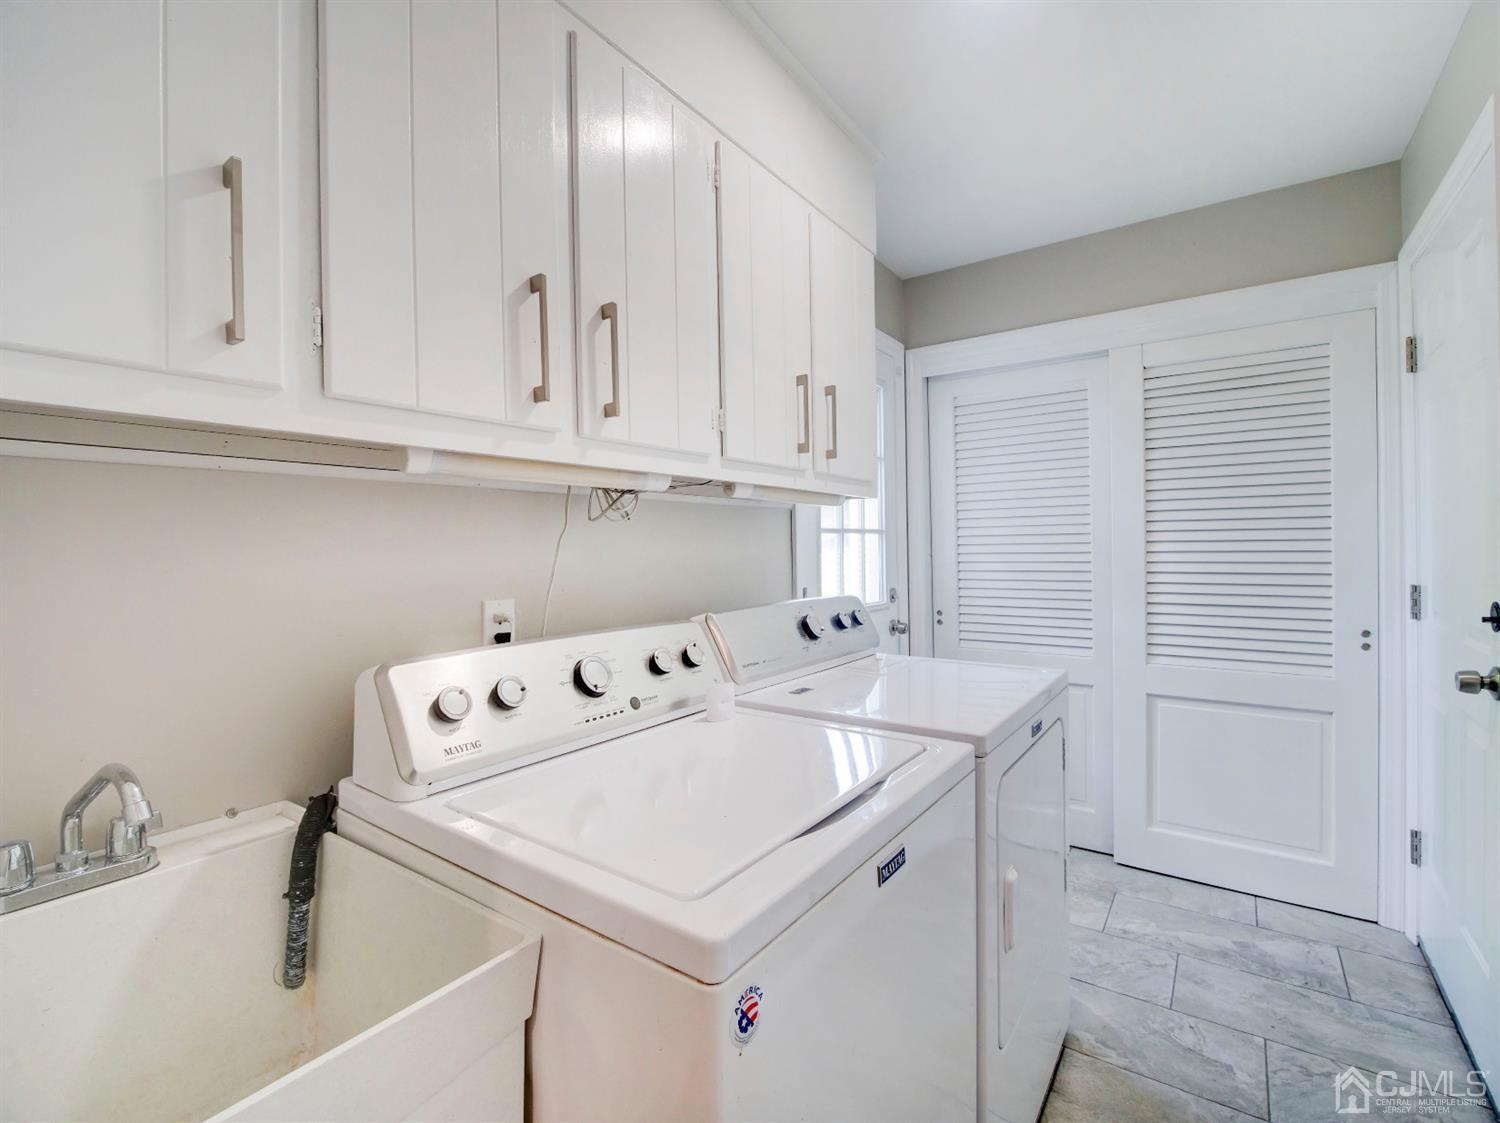 Laundry/ mud room of the kitchen with garage and back yard access and lot of extra closet and storage/panty space.